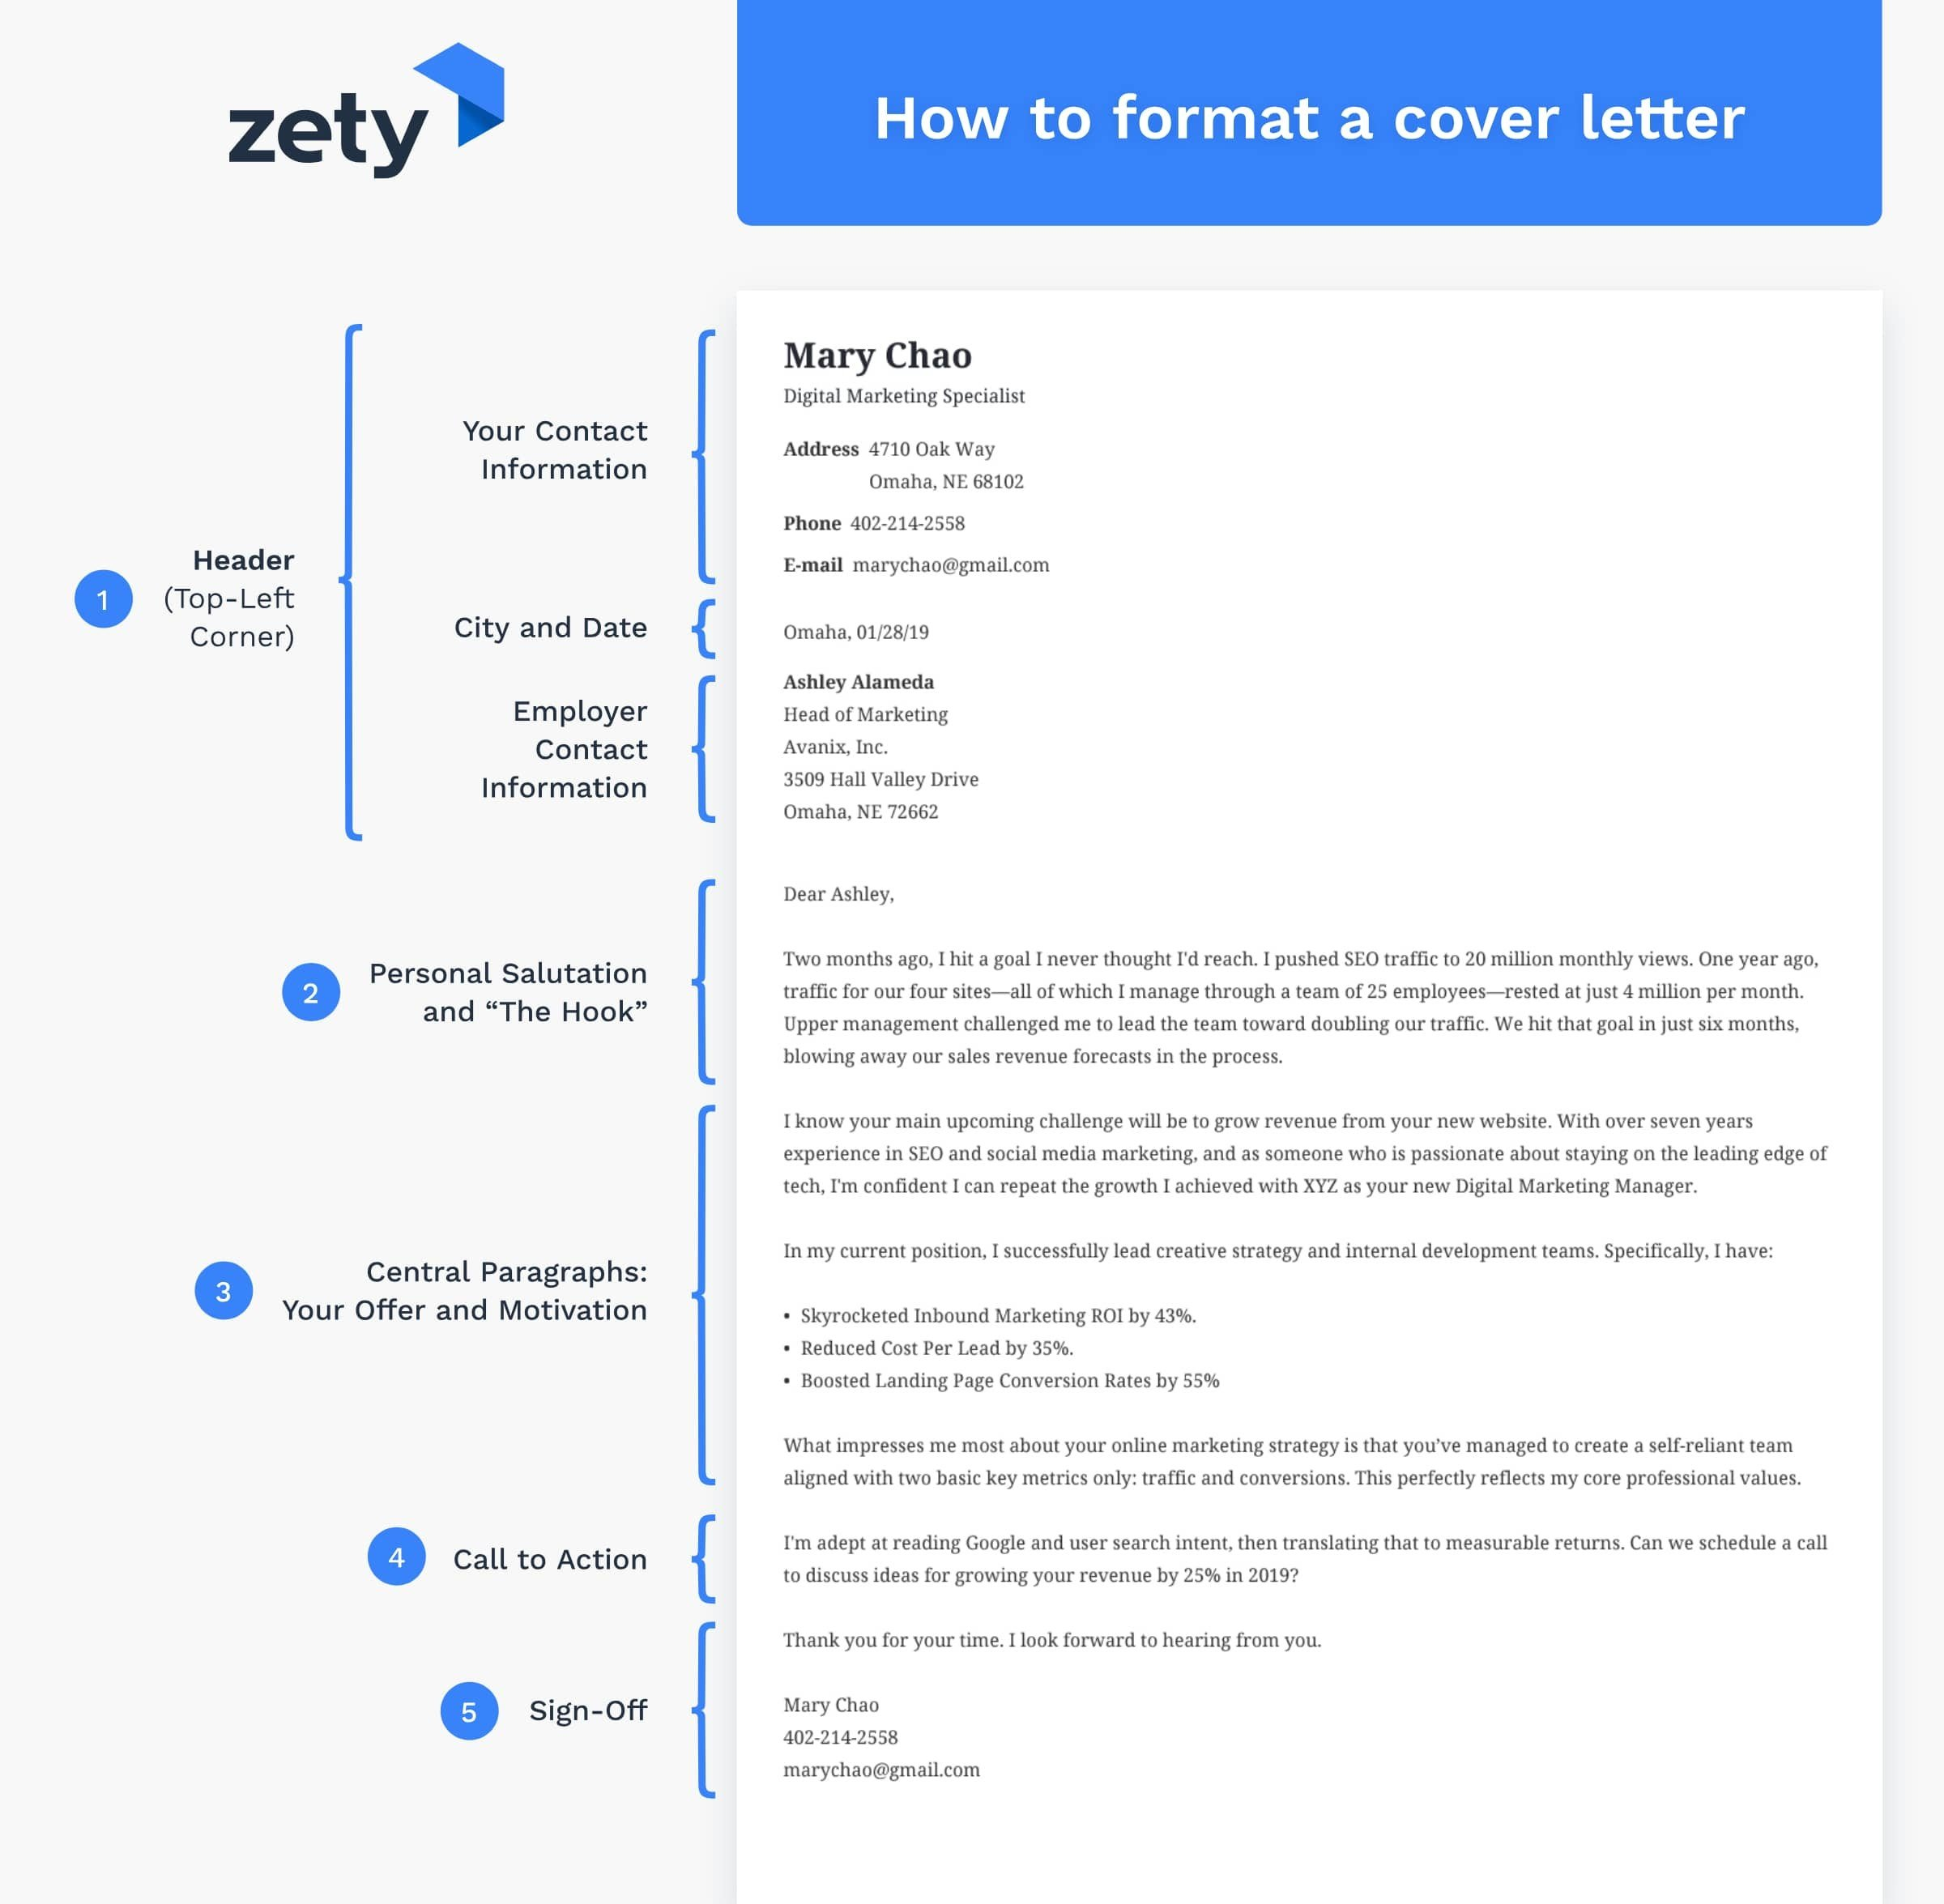 Heading Of A Cover Letter from cdn-images.zety.com